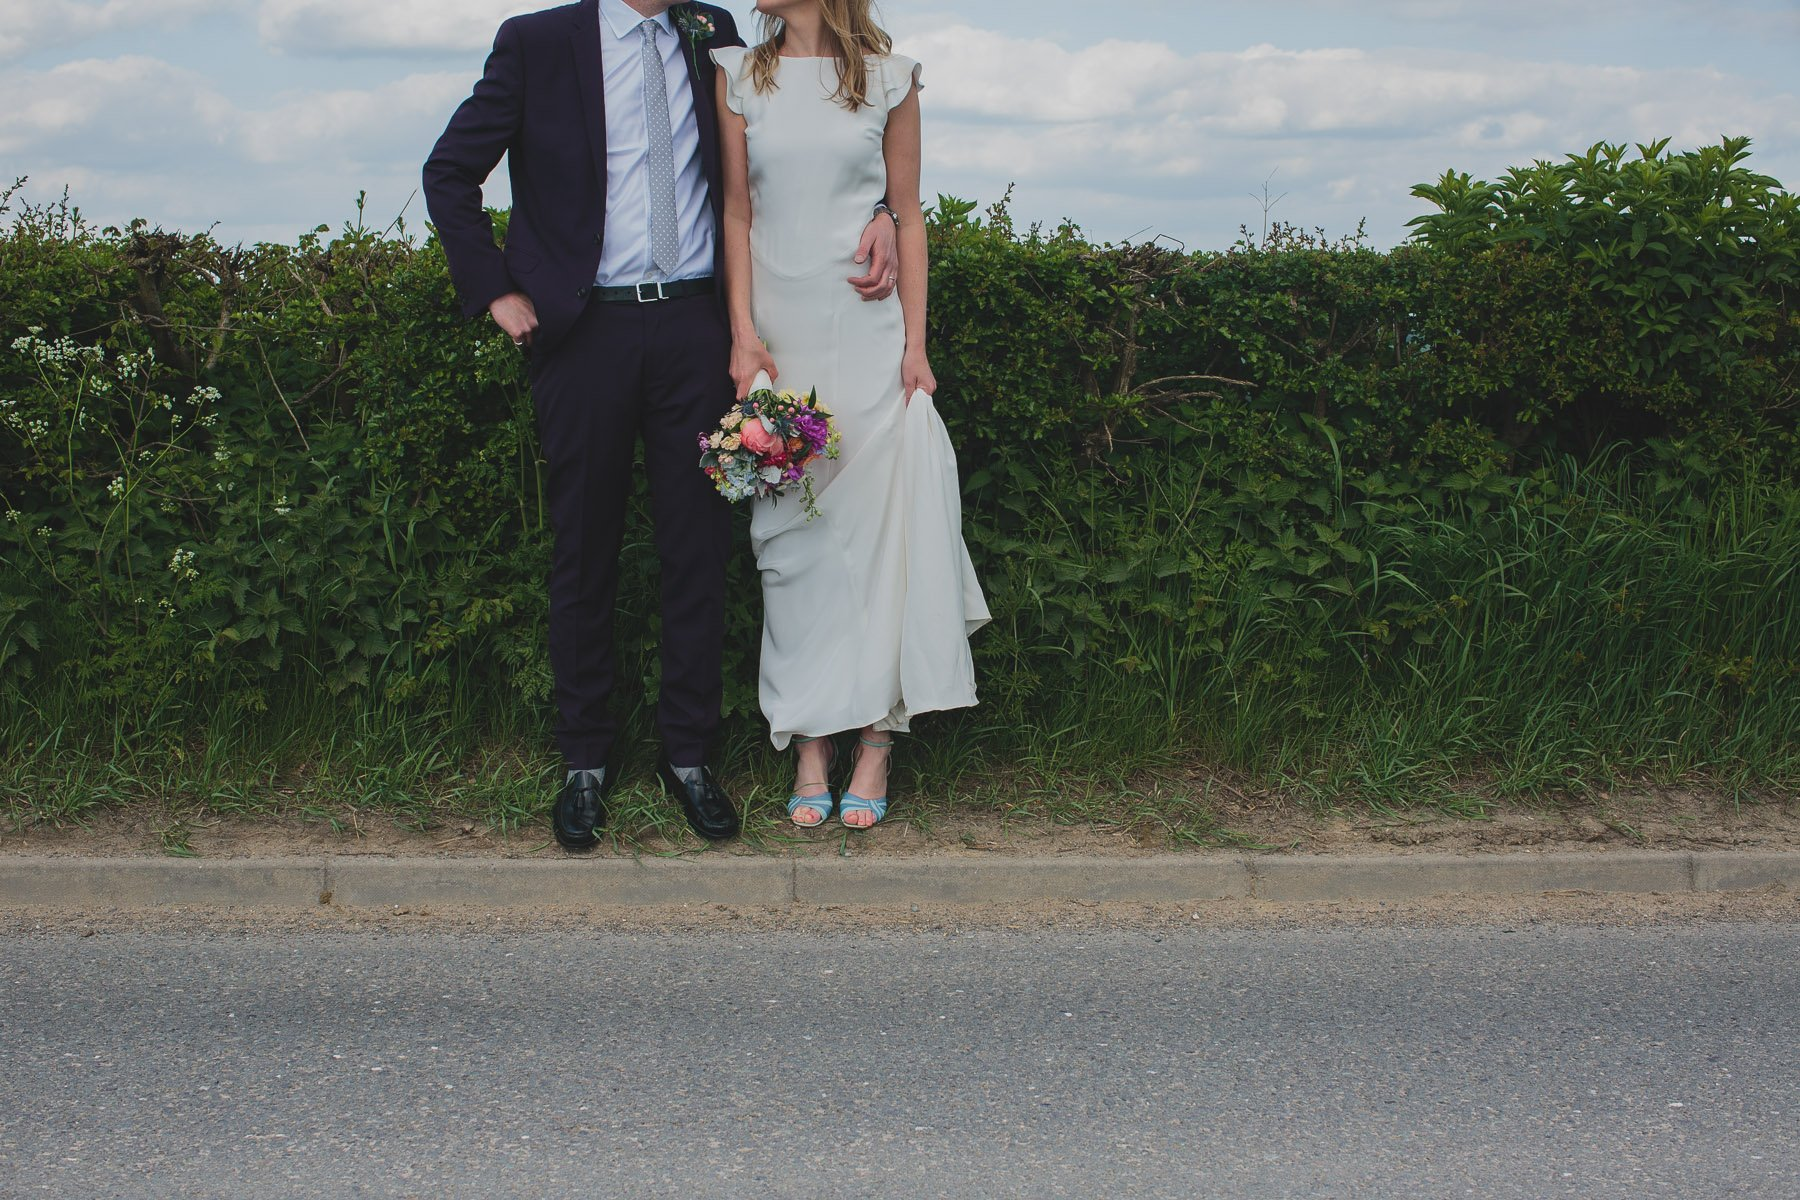 Buckinghamshire-Wedding-Lizzie-Duncan-111